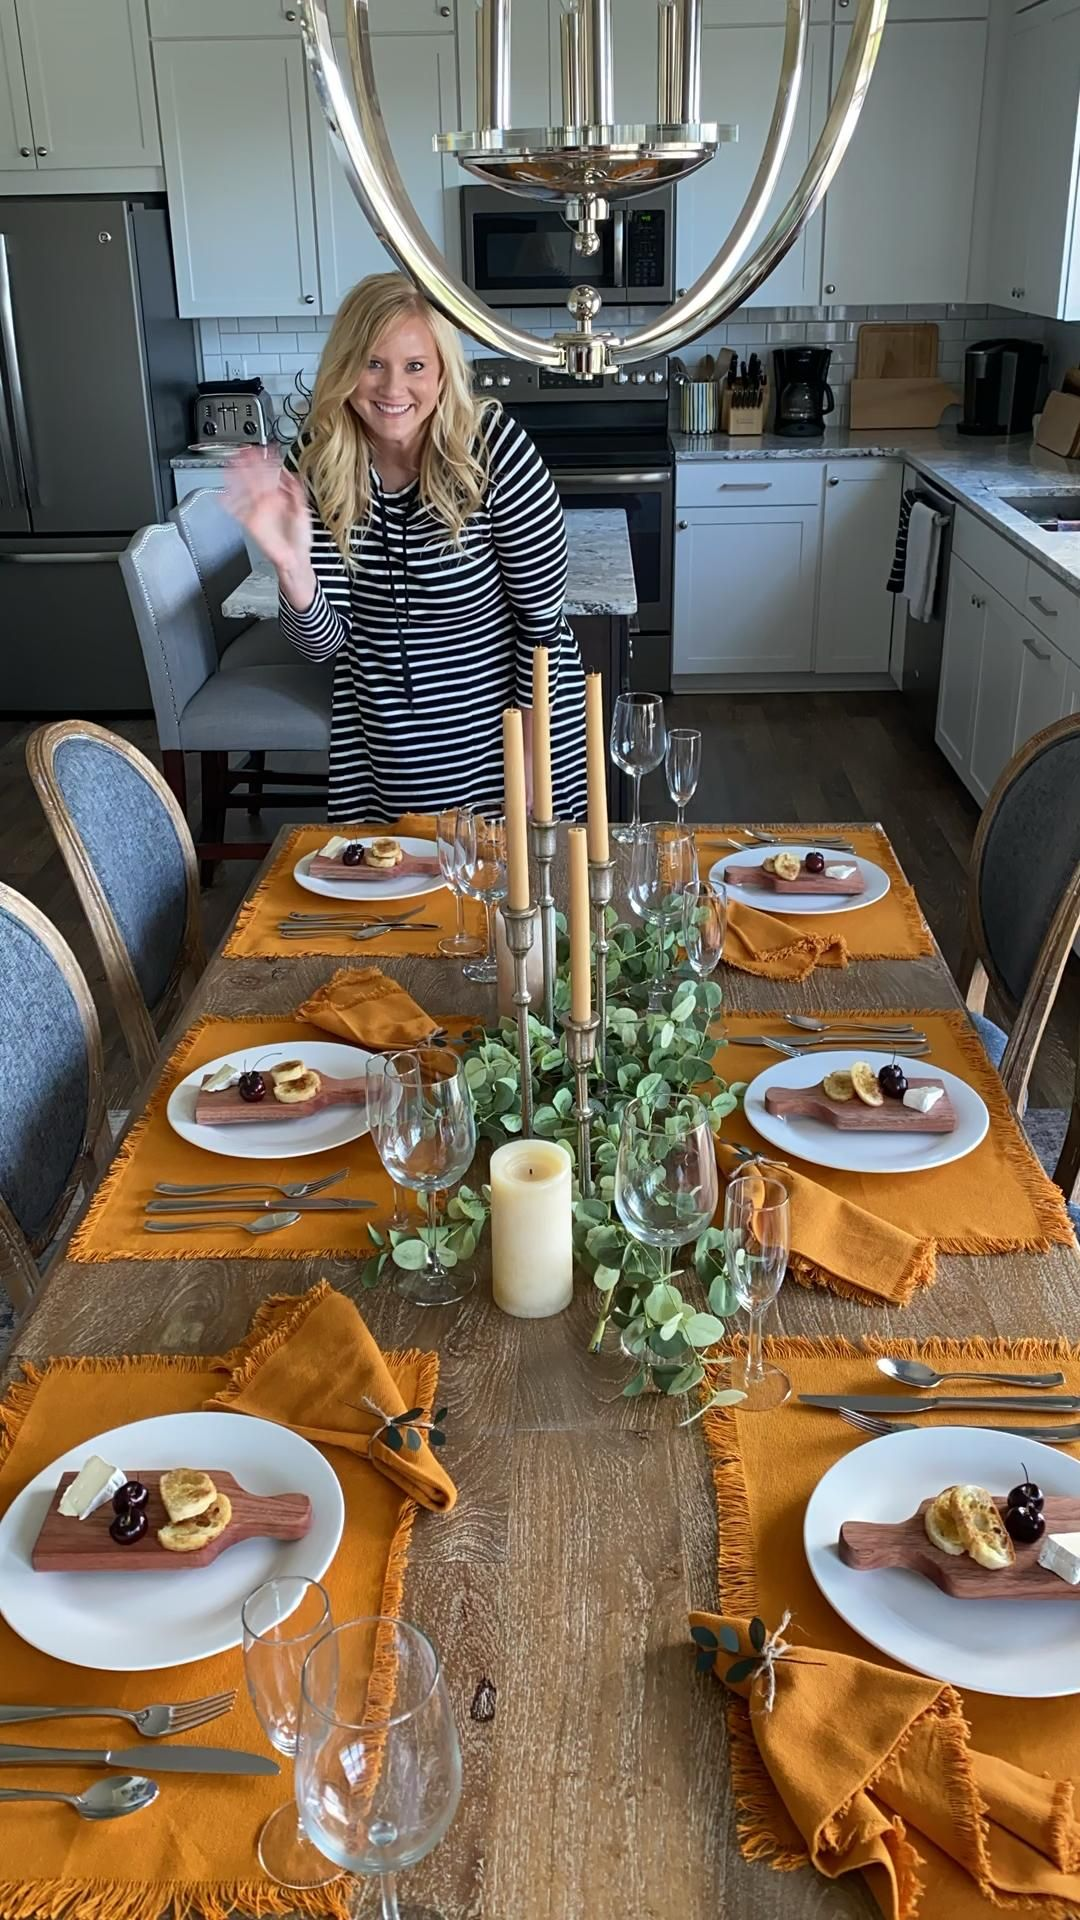 Fall table setting // Thanksgiving table setting // fall table decor // tablescape with fall colors // tablescape with orange placemats napkins // #tabledecorations #tablescape #tablesettingideas #falldecor #falltabledecor